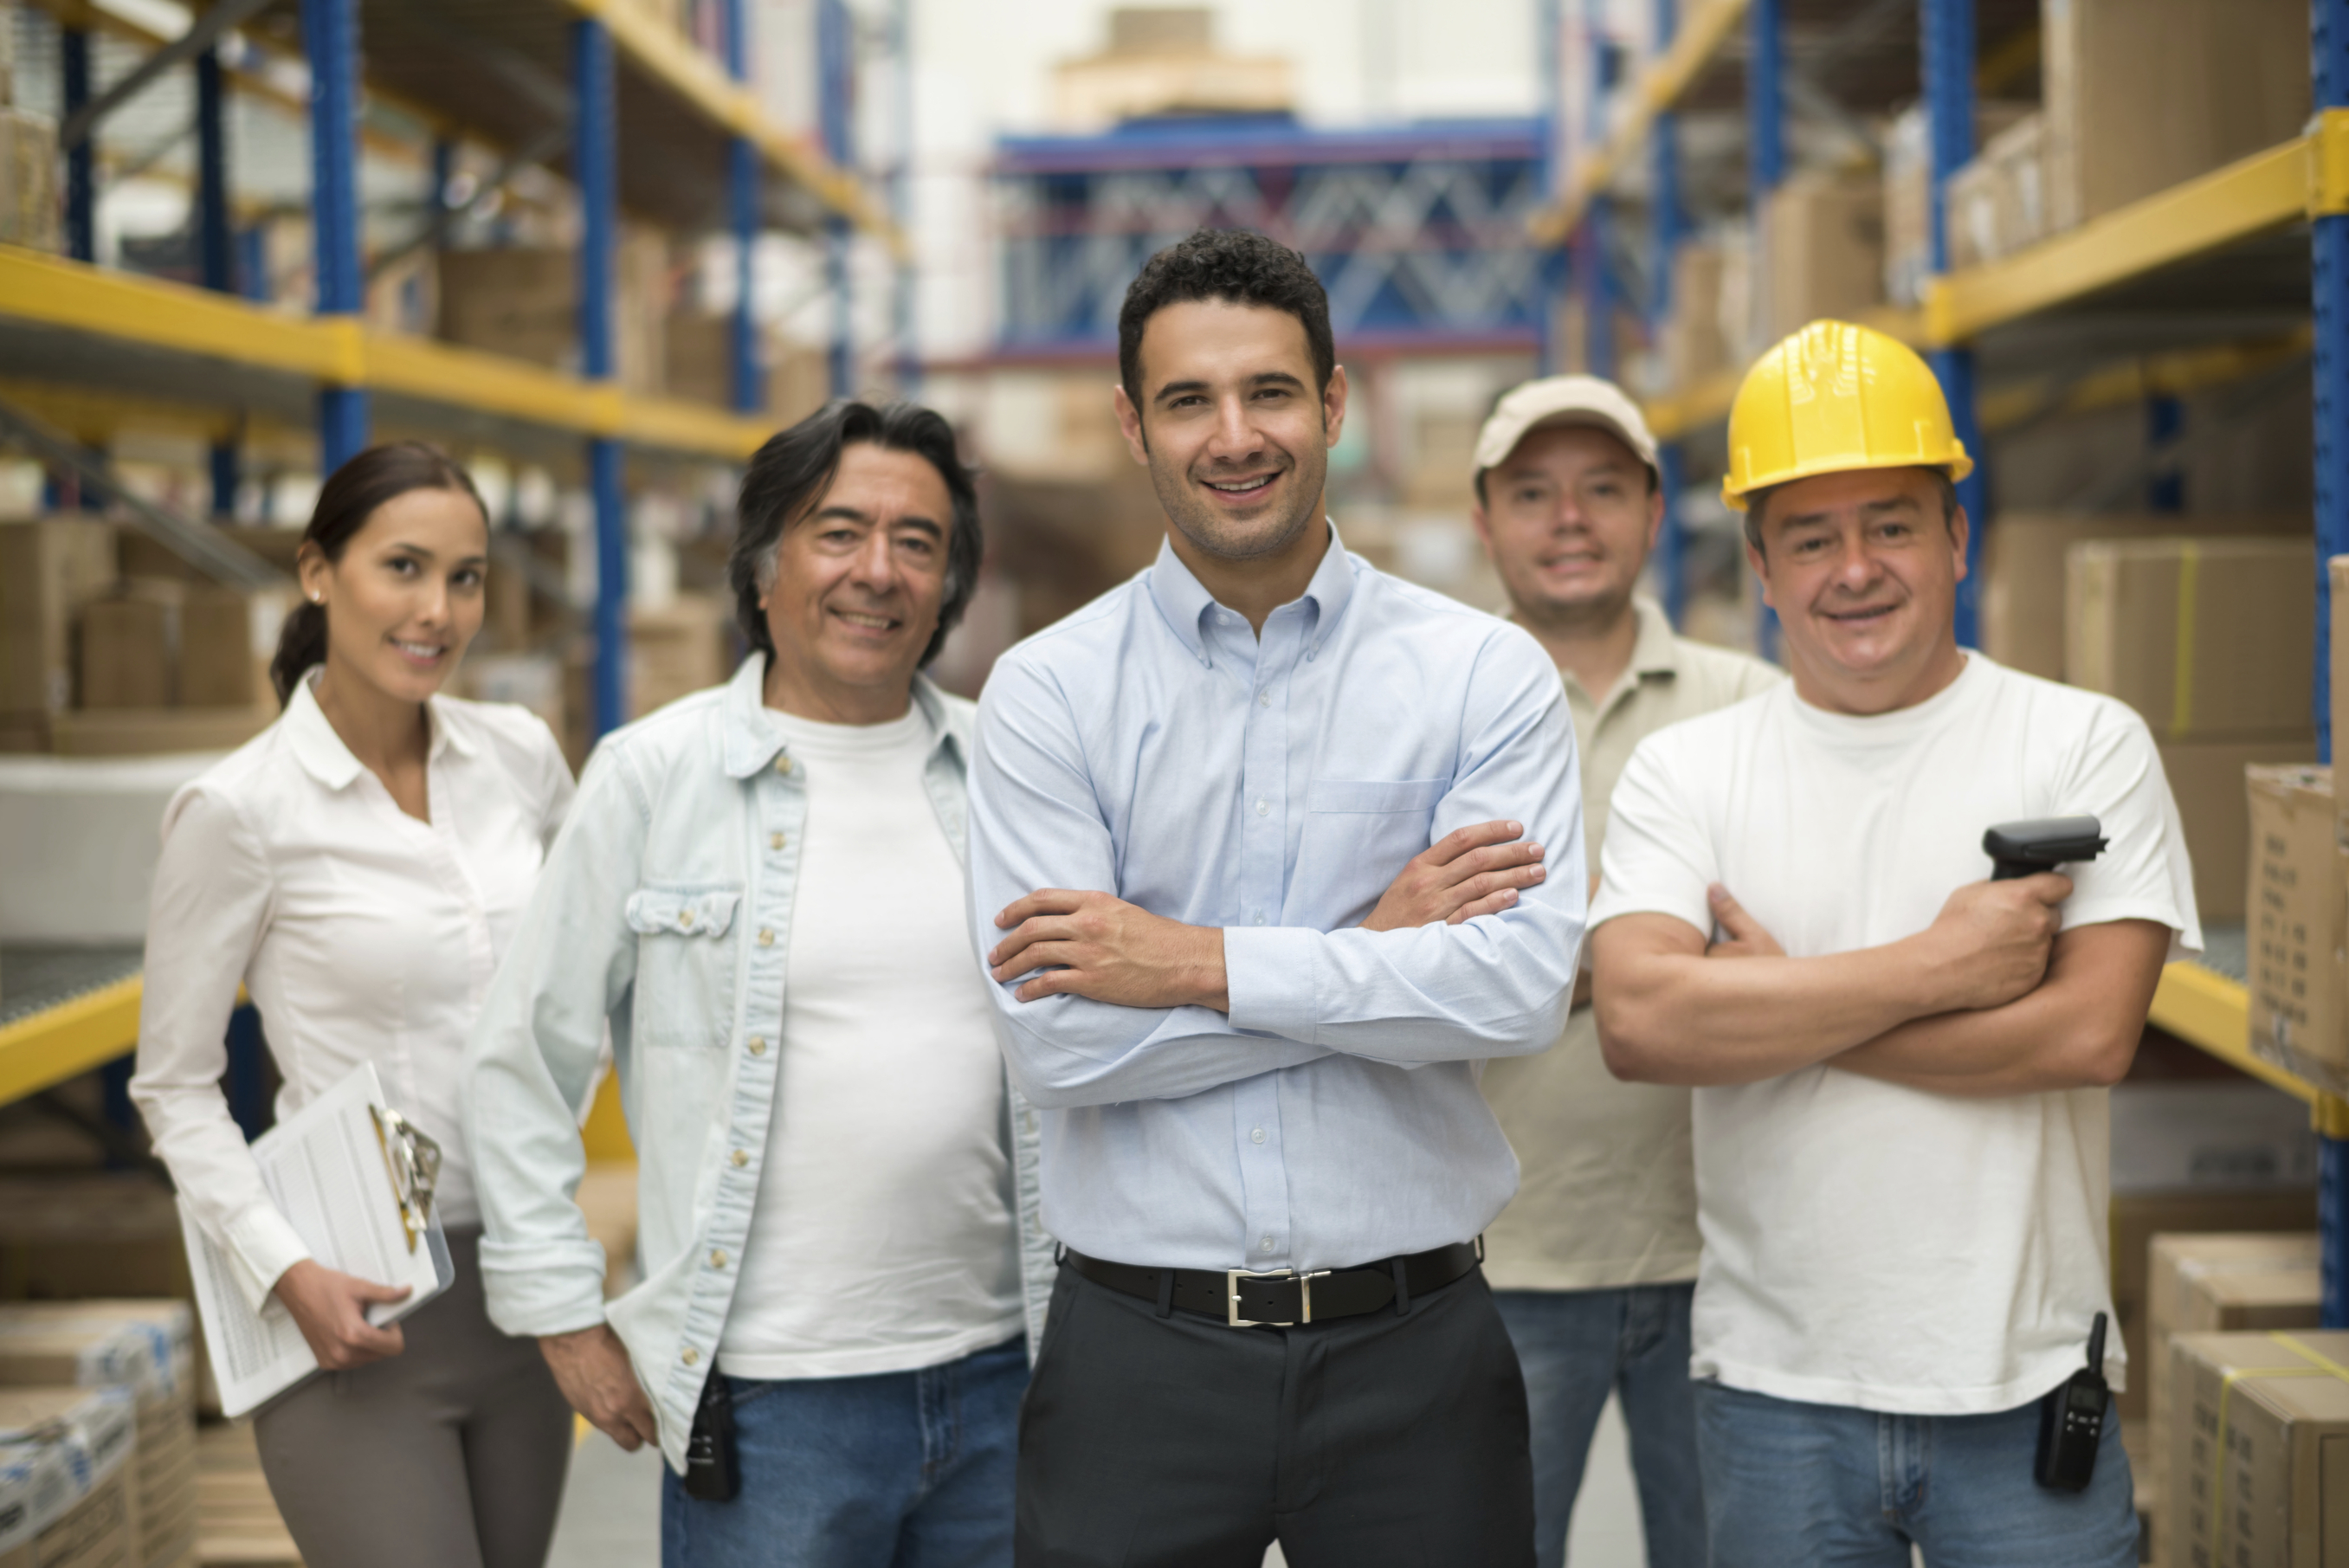 group-of-workers-at-a-warehouse-000088821845-large.jpg